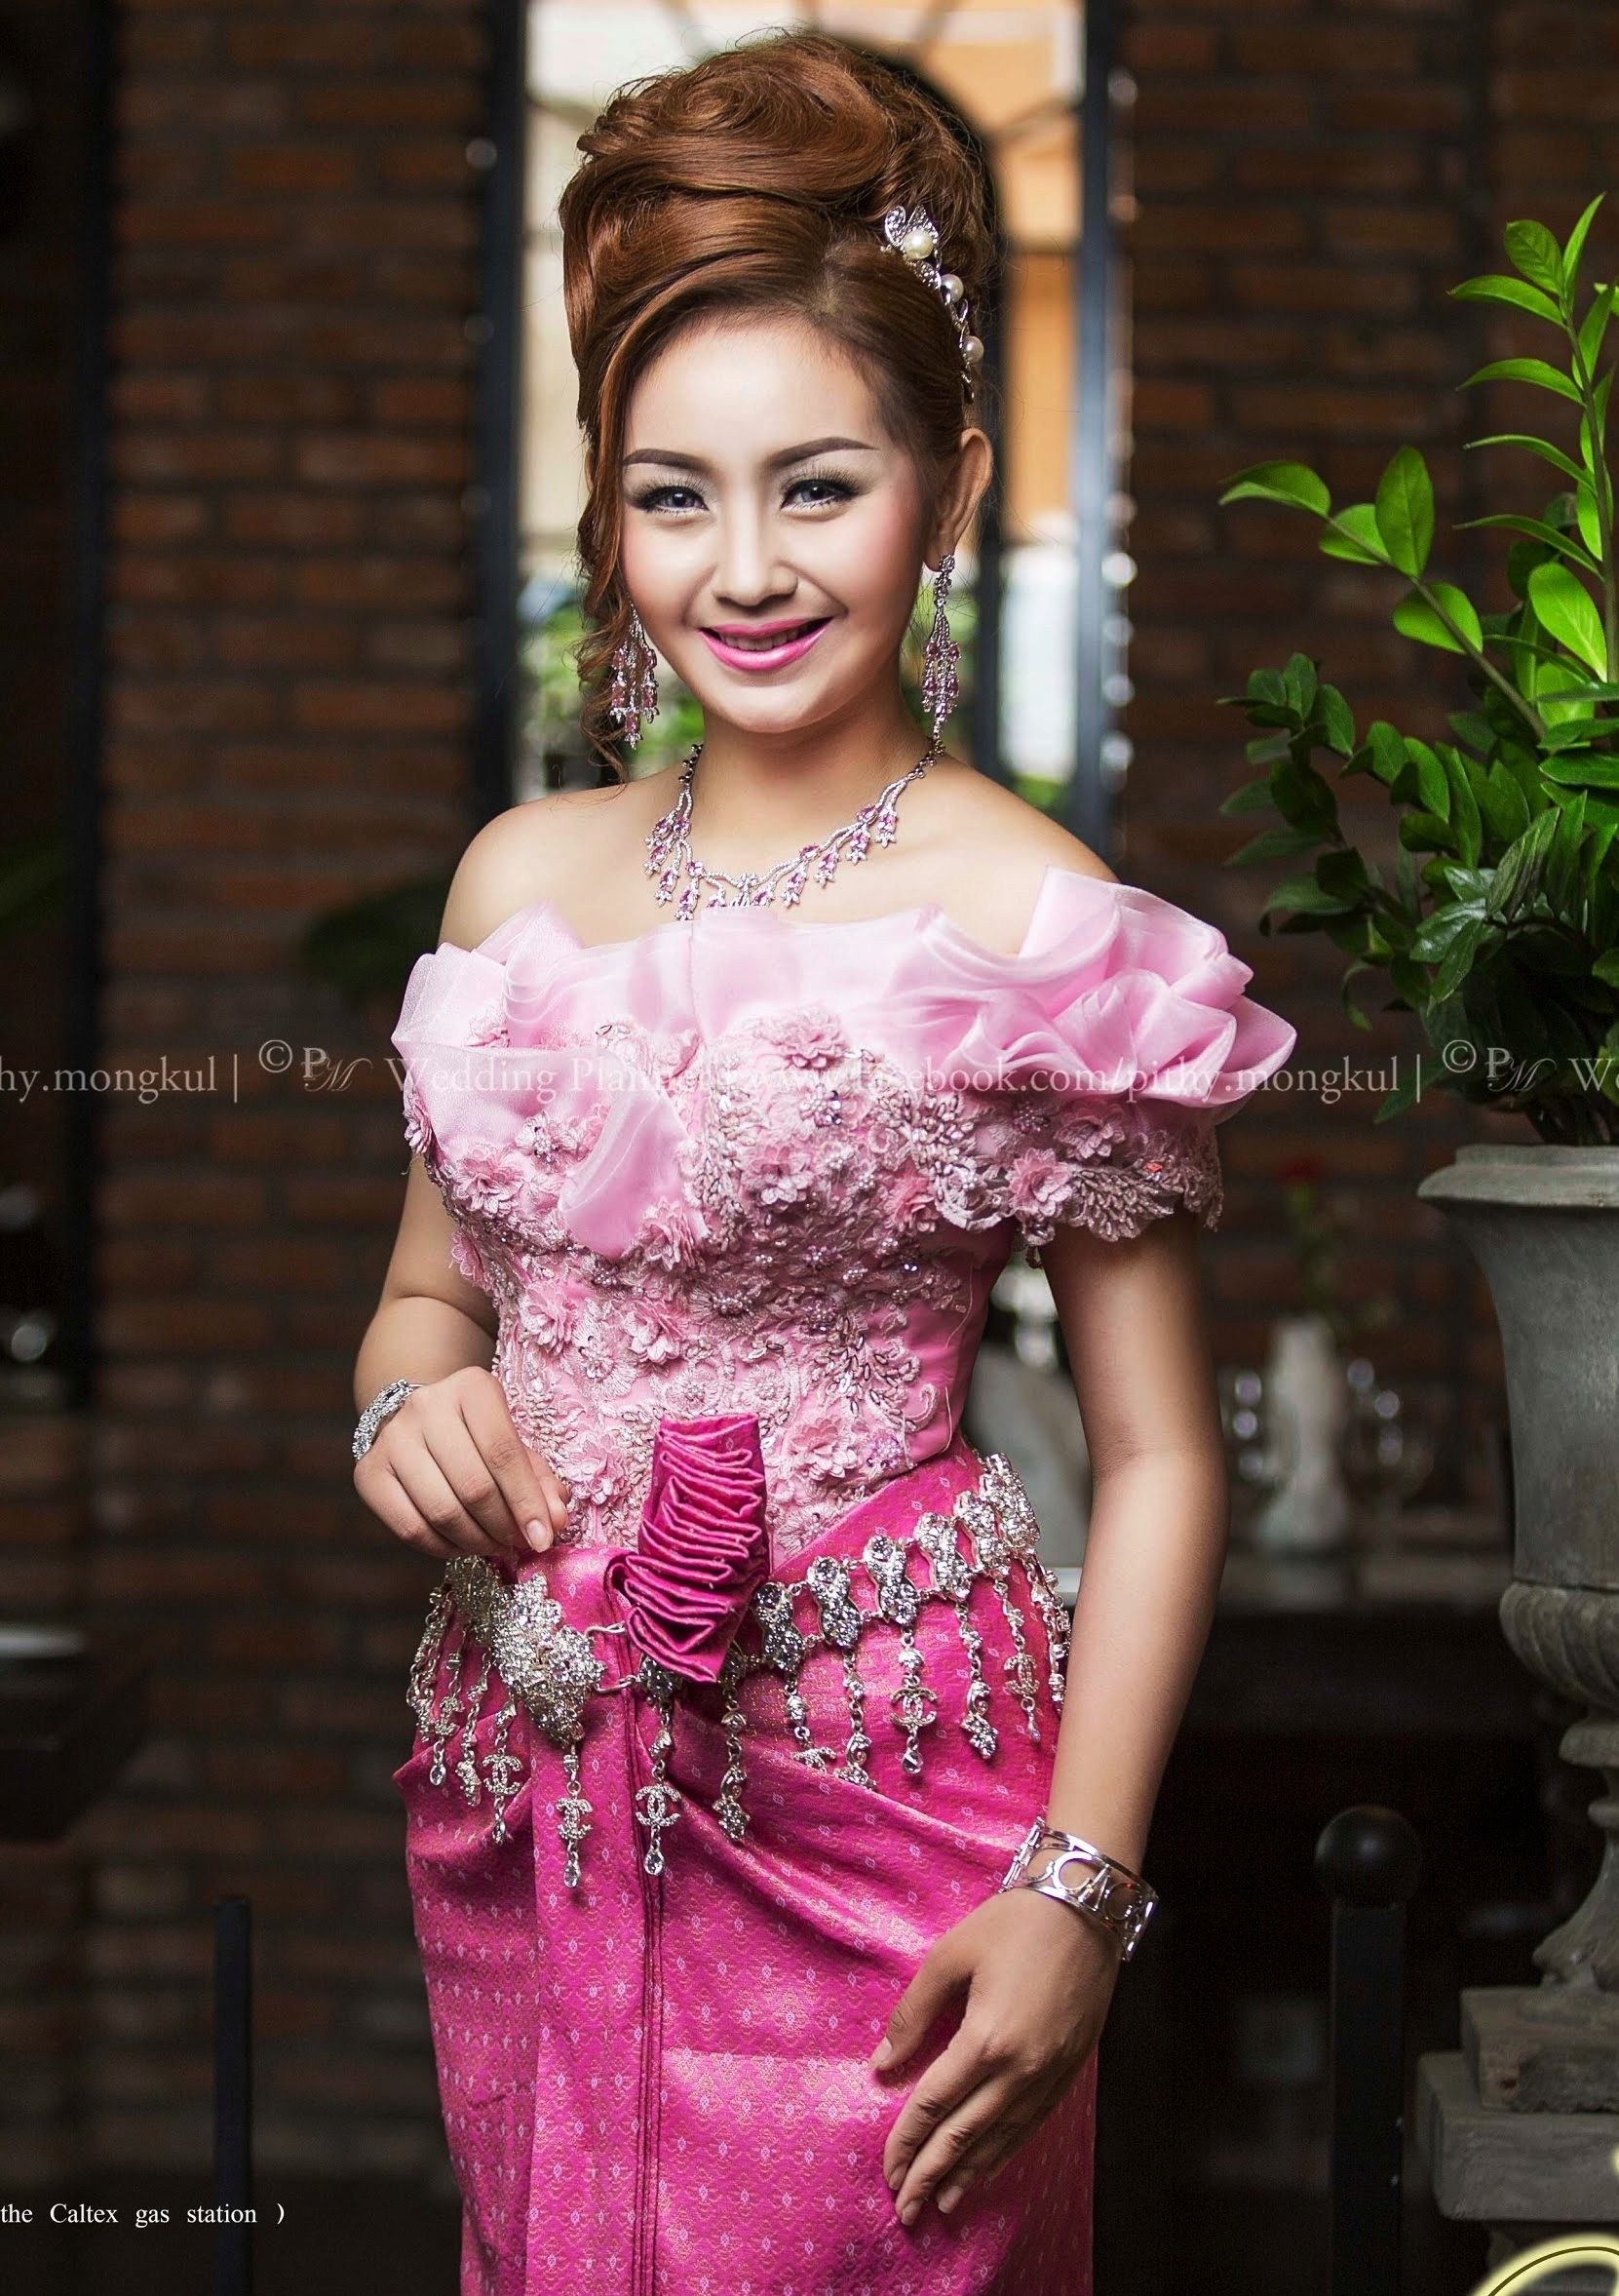 khmer wedding costume | cambodia/khmer wedding dress | Pinterest